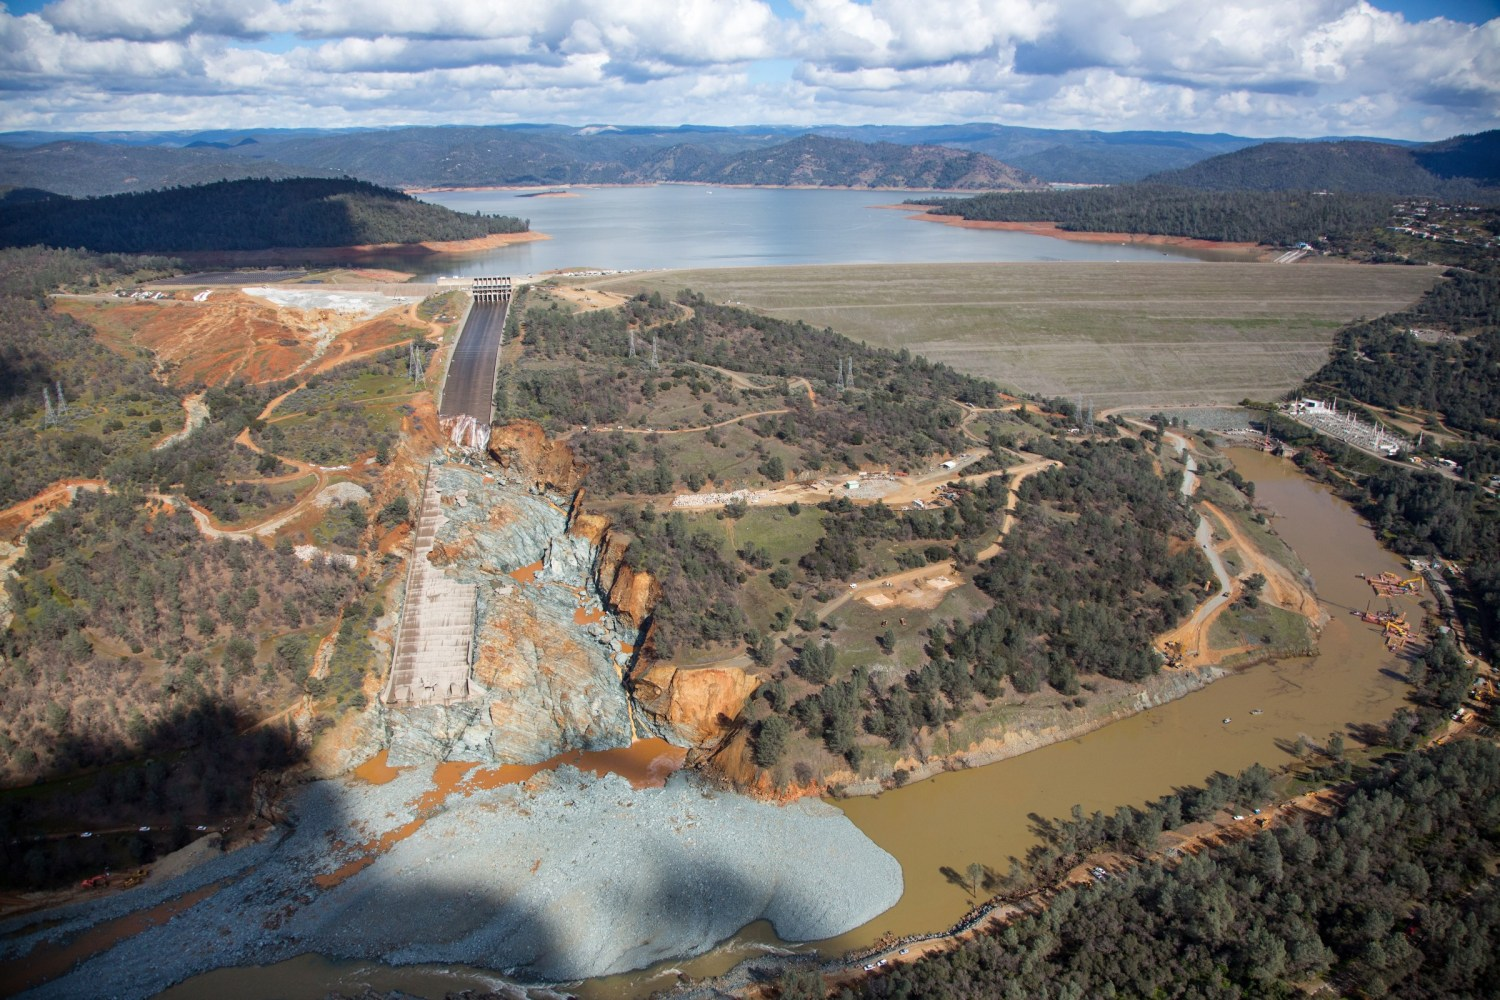 FERC Panel Finds Deficiencies in Oroville Dam Safety Reviews